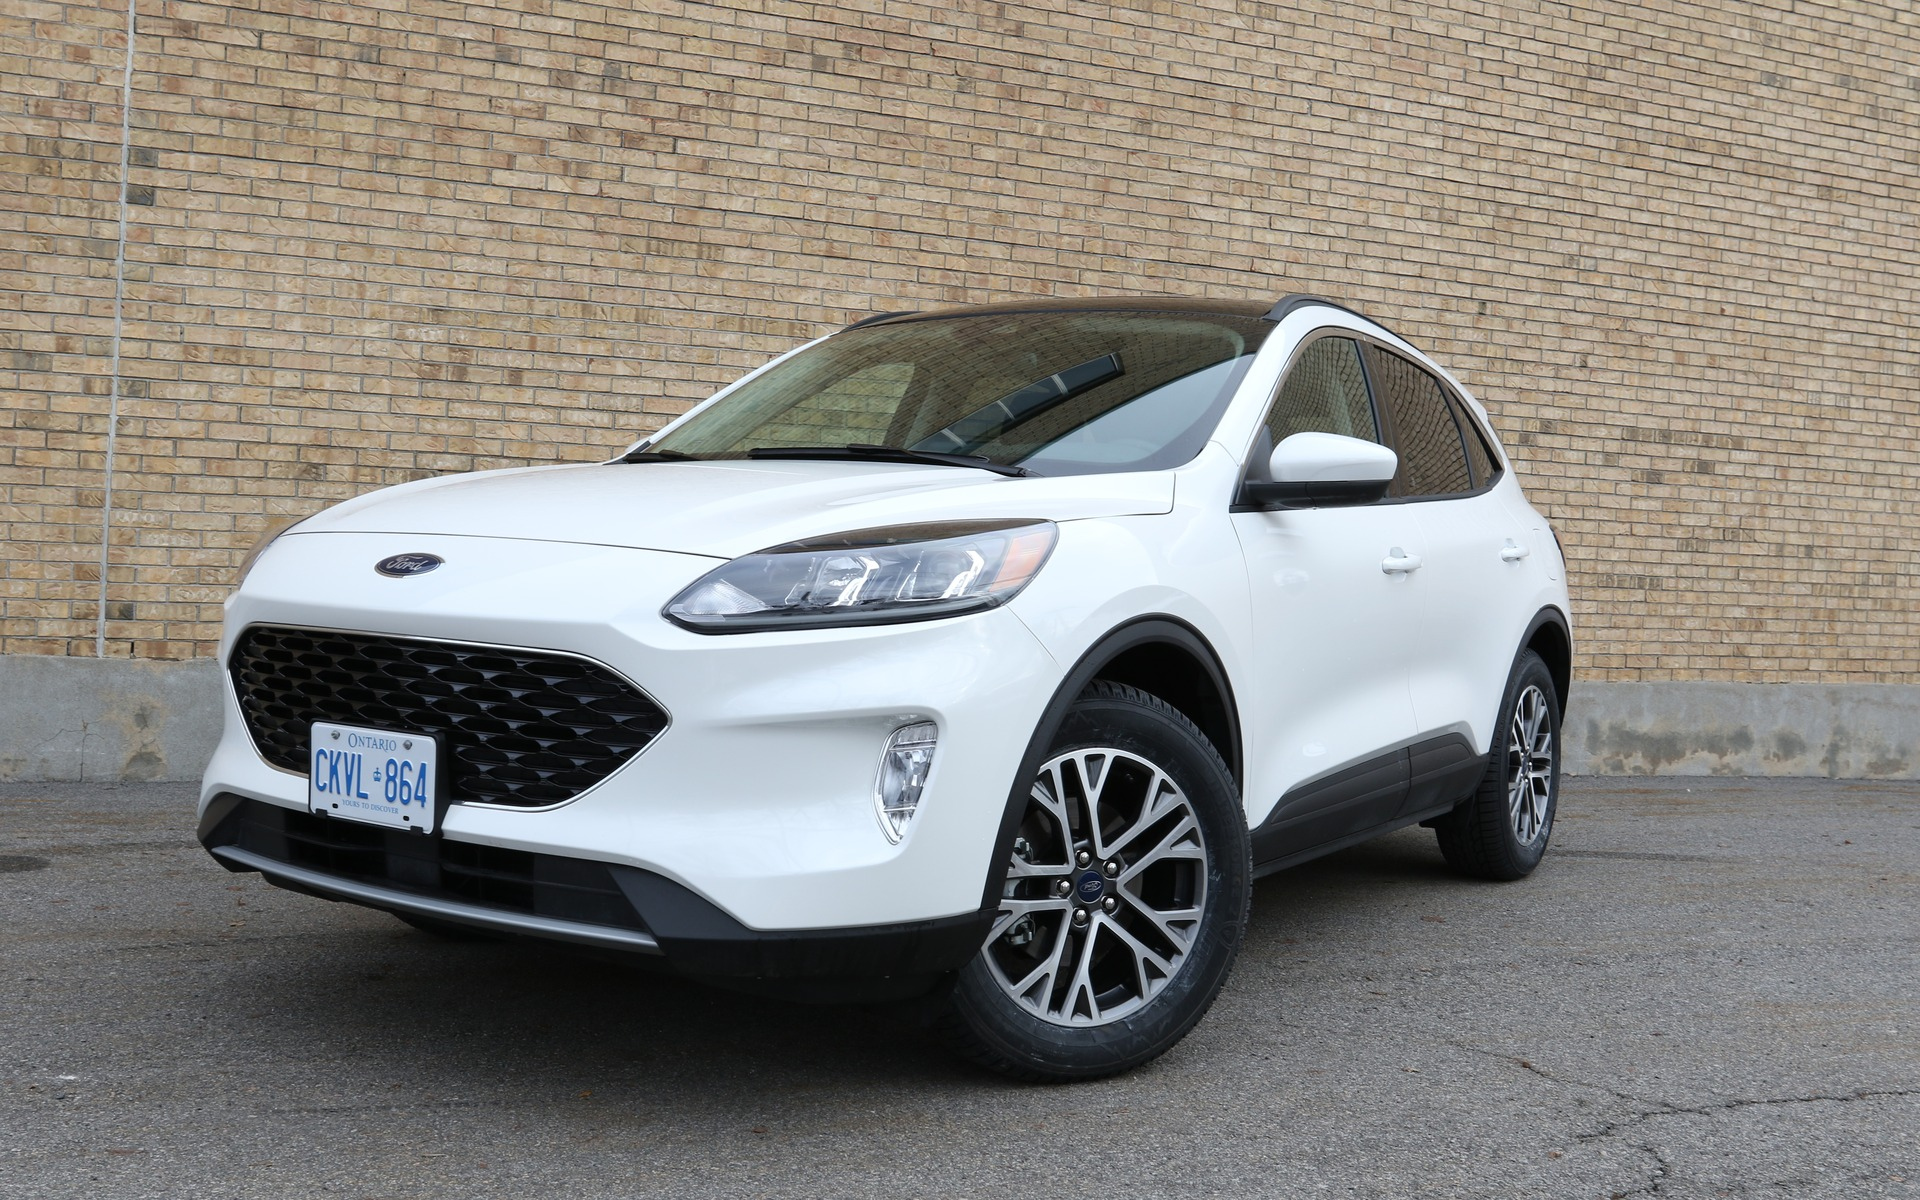 Ford Escape 2020 : Pas Encore Au Niveau - Guide Auto